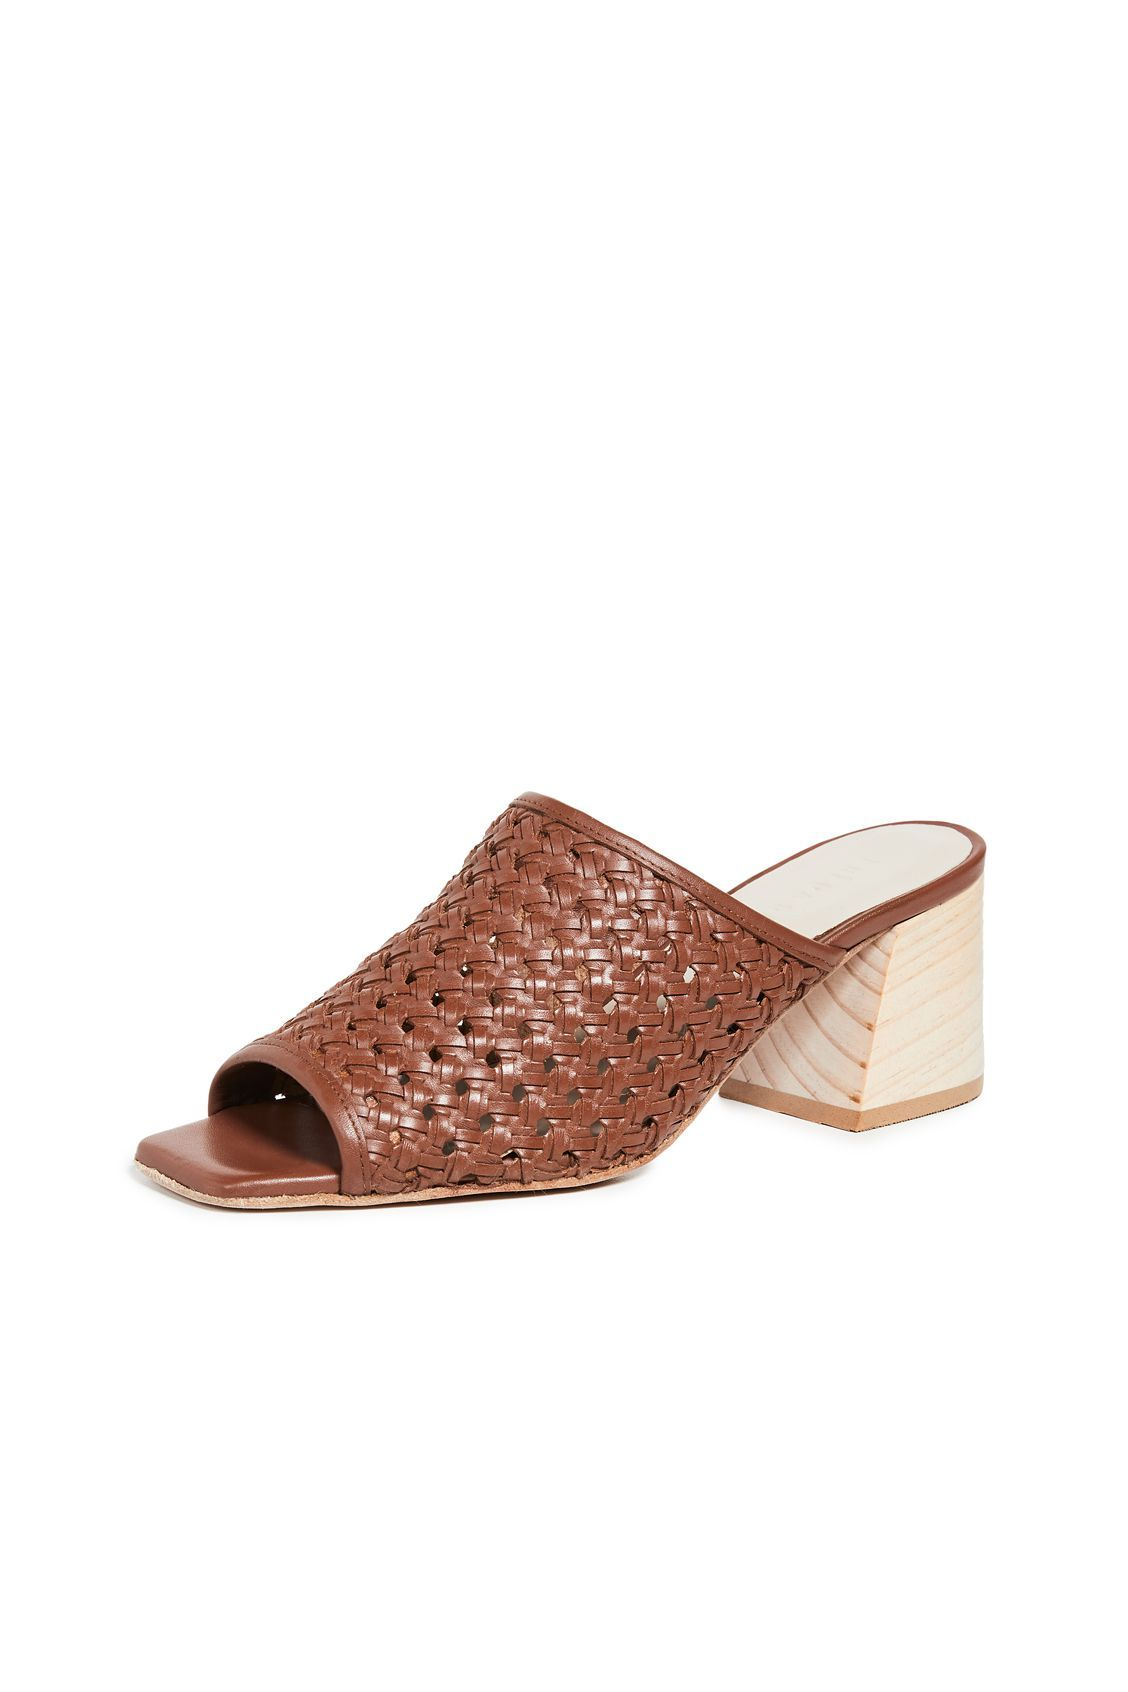 Pia Woven Block Heel Sandals Freda Salvador shopbop.com $395.00 SHOP NOW Quintessentially summer, this woven mule comes with a stacked wooden heel you can truly last in.